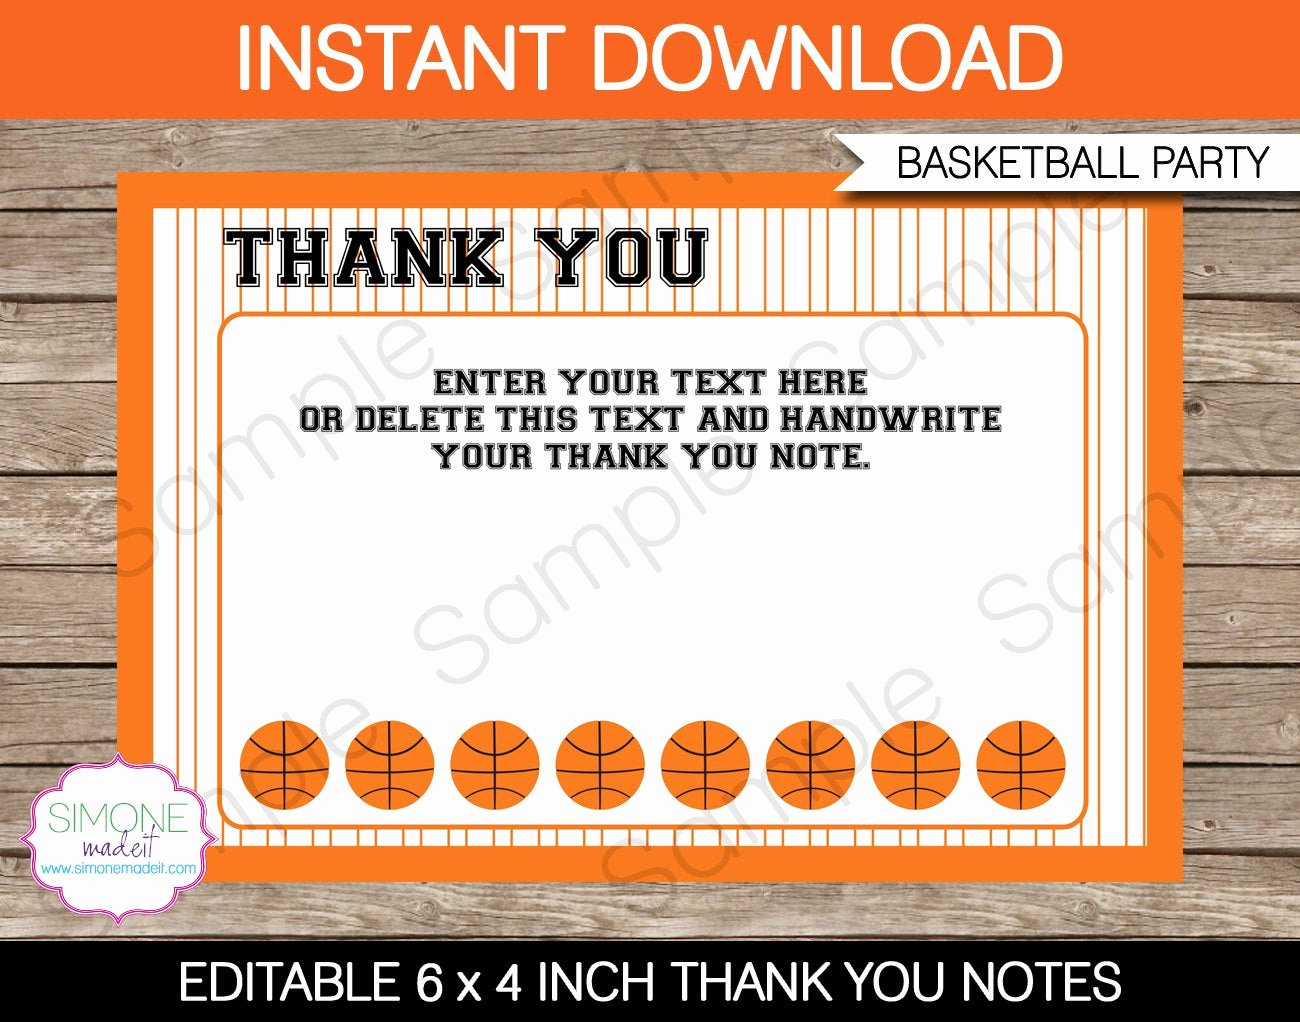 Party Thank You Note Fresh Basketball Party Thank You Notes Basketball Thank You Cards